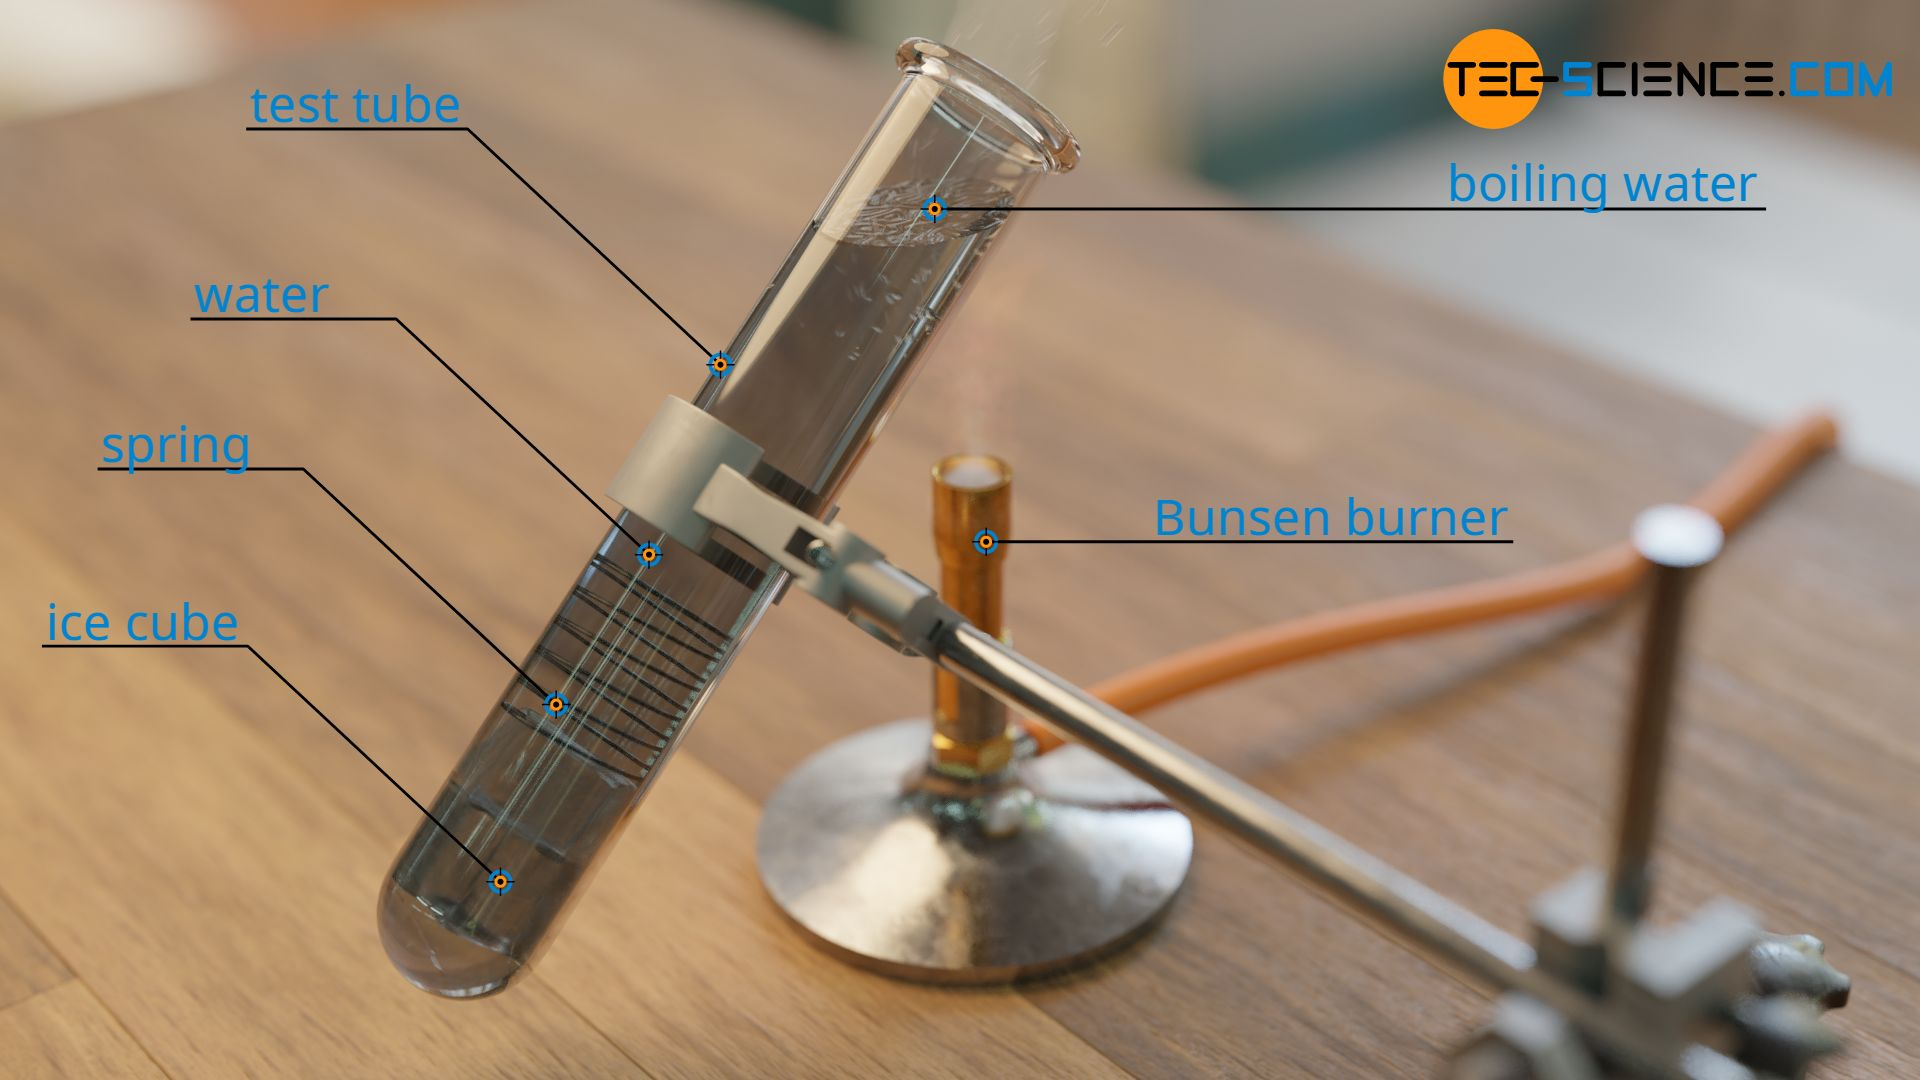 Experiment to demonstrate the low thermal conductivity of water